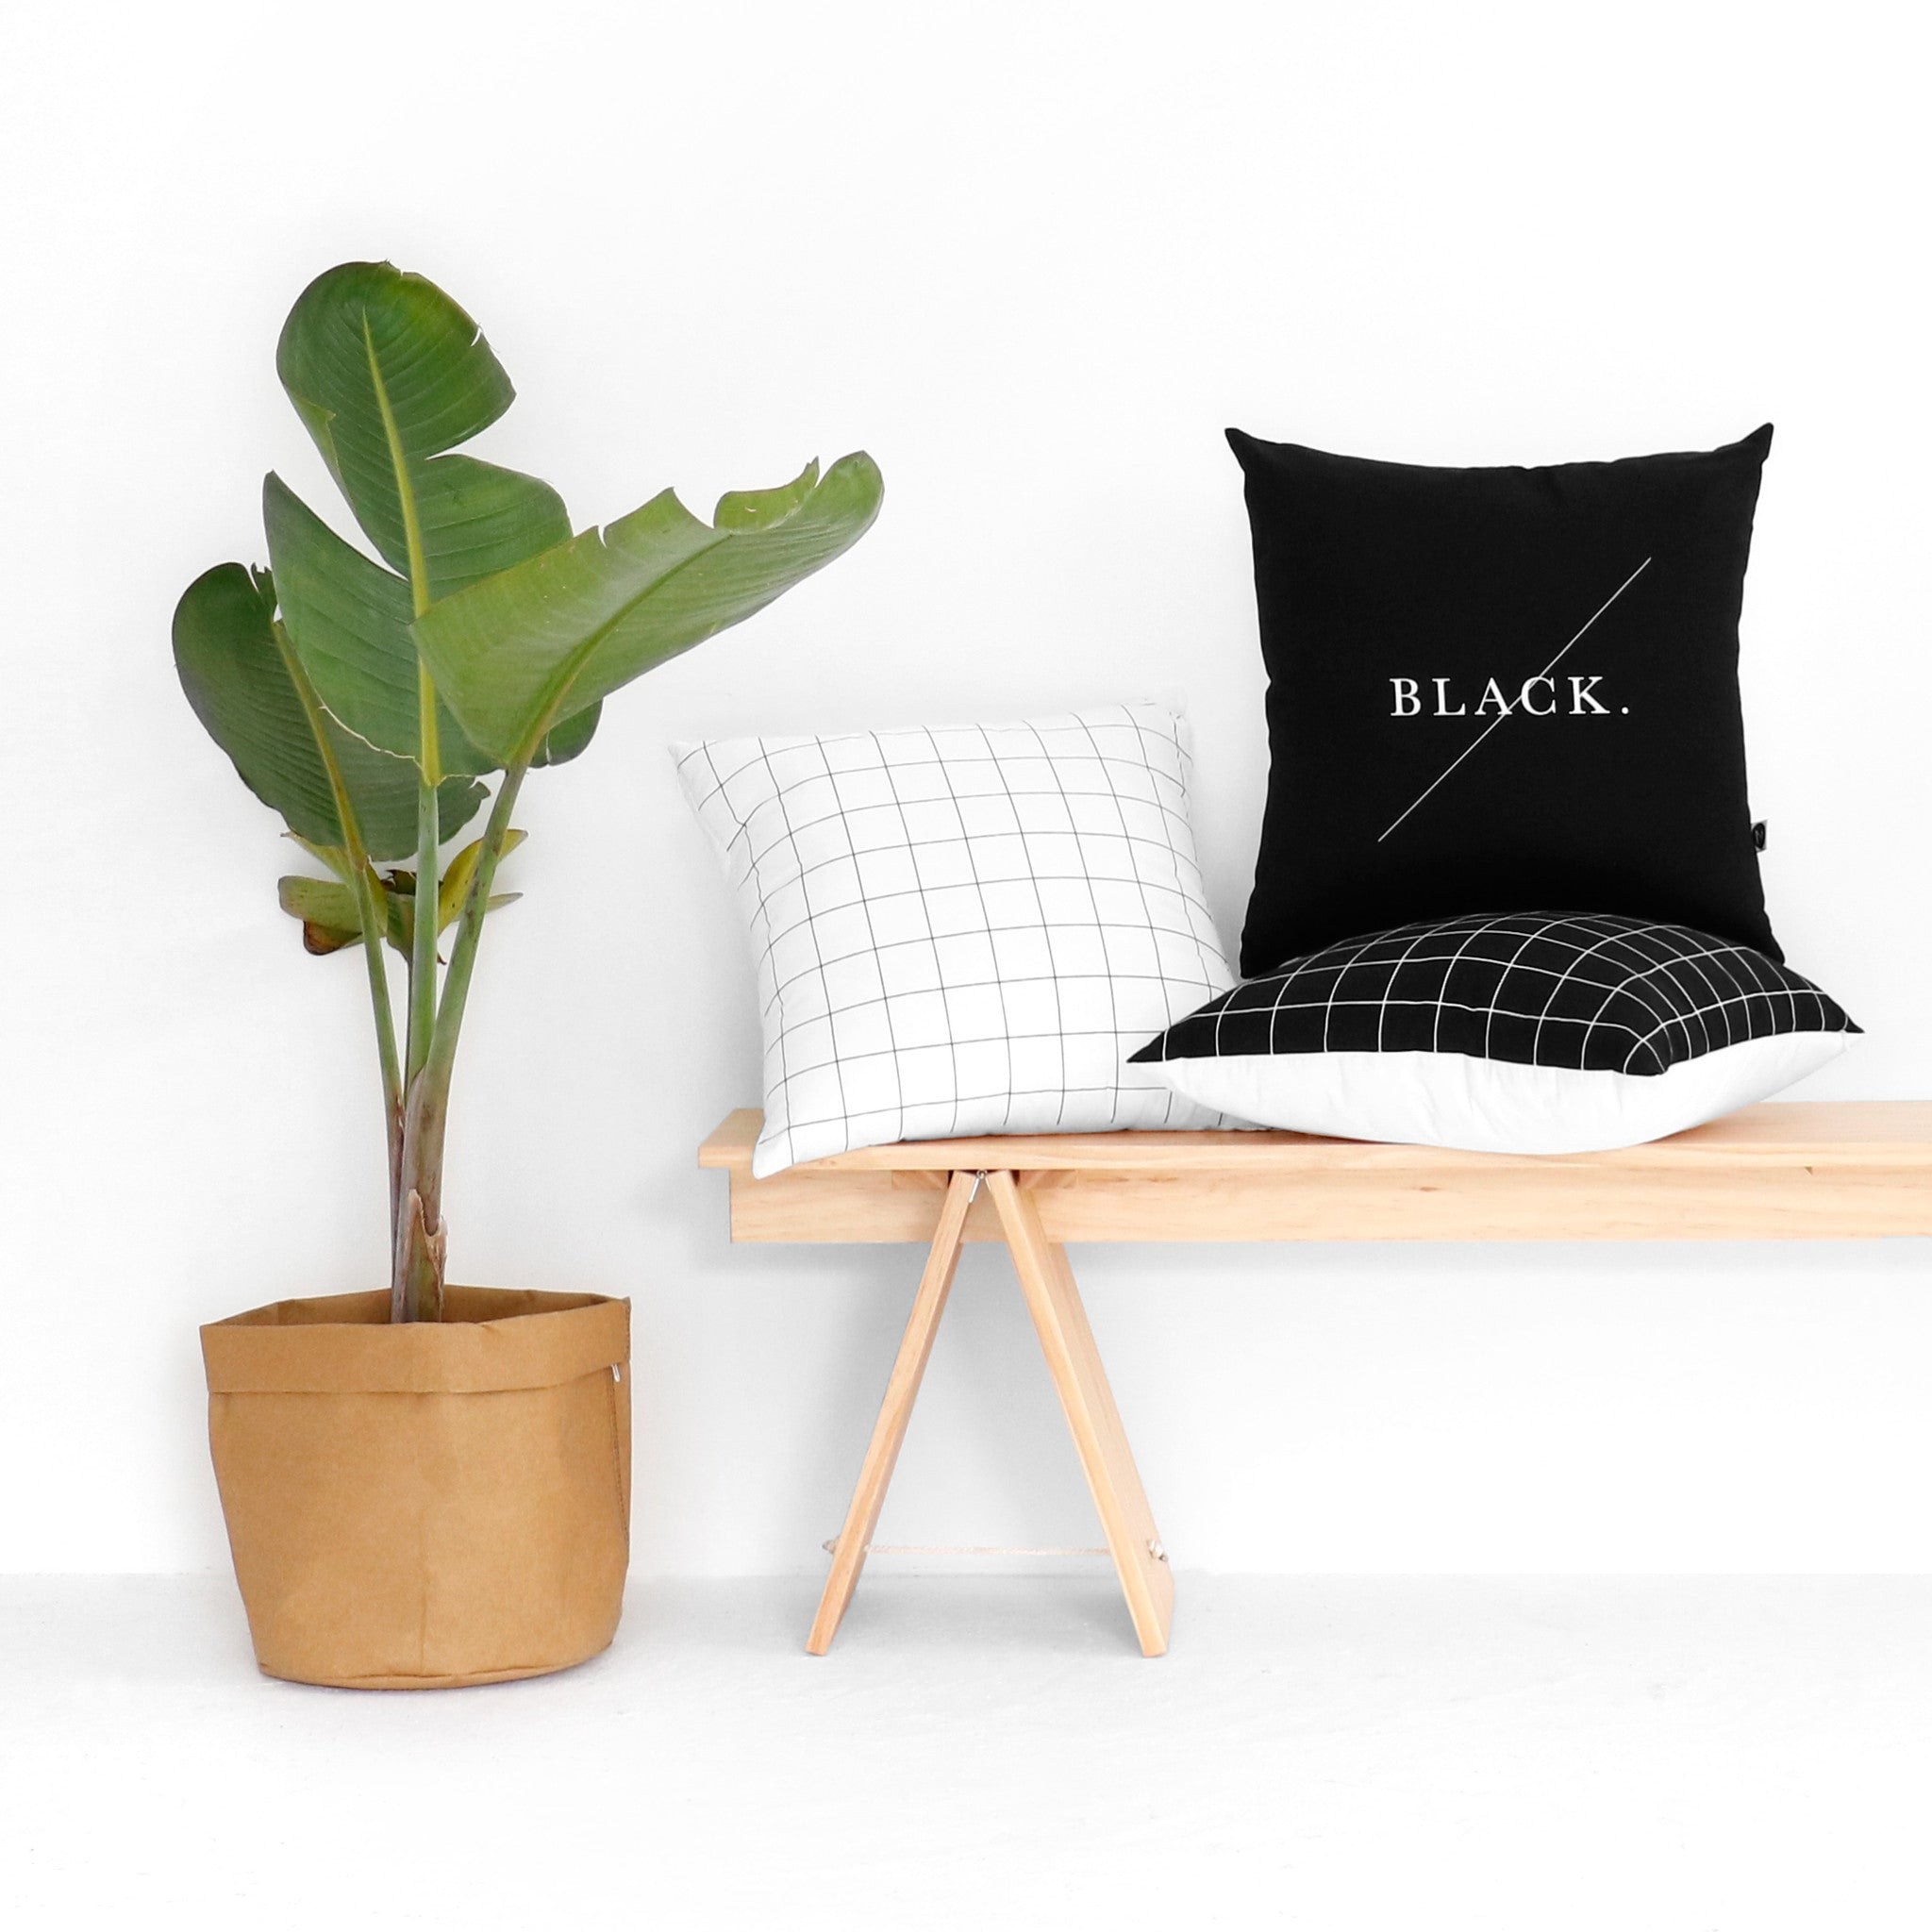 Black Text Cushion